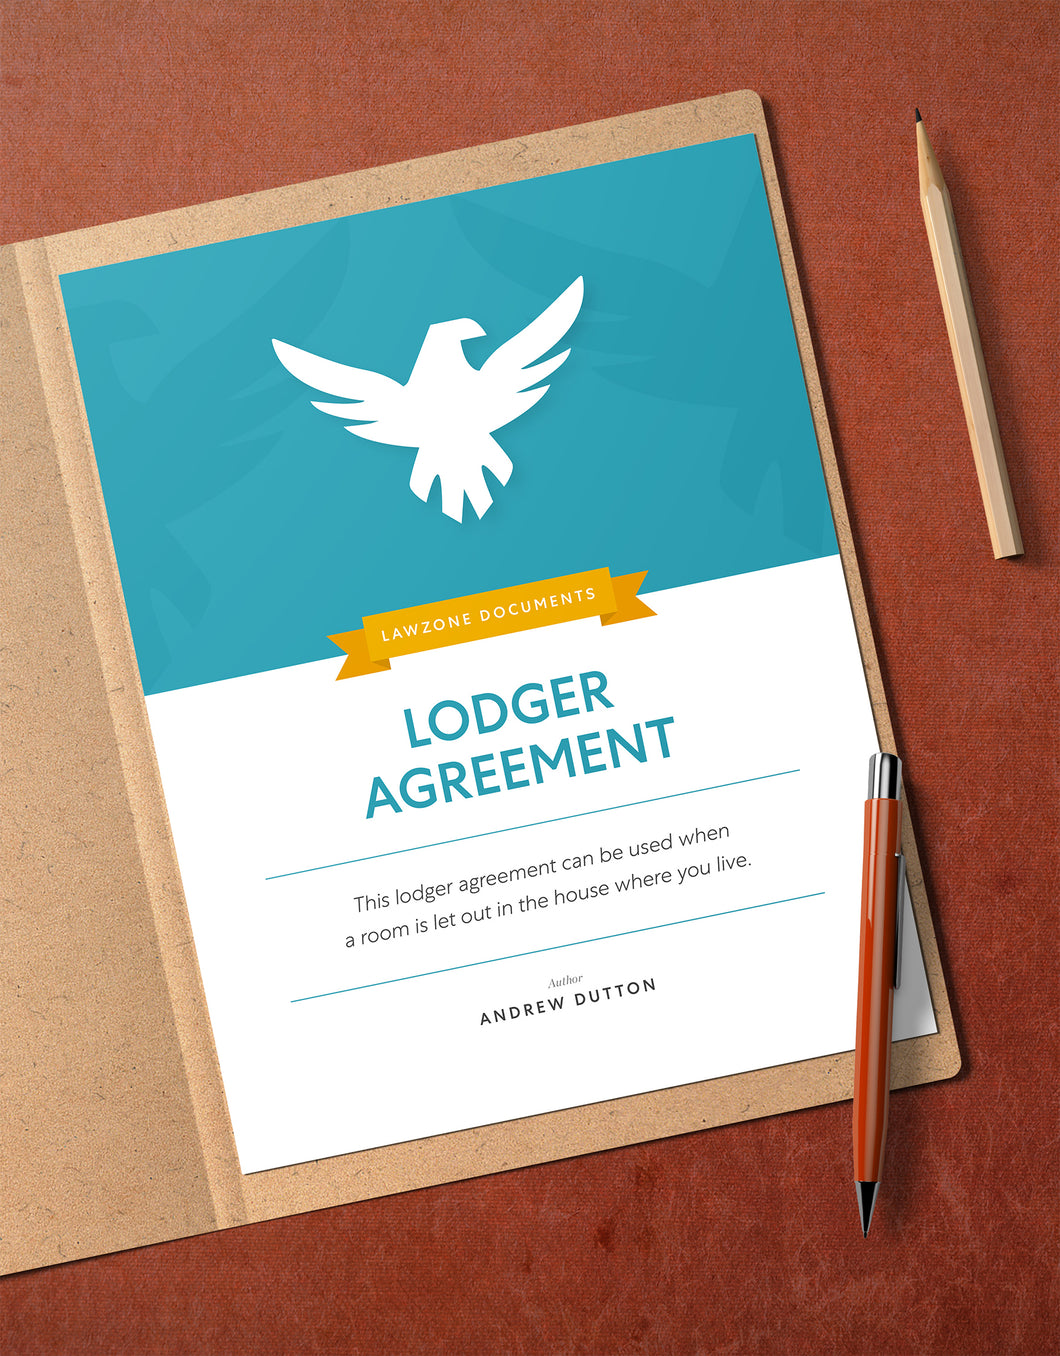 Lodger Agreement